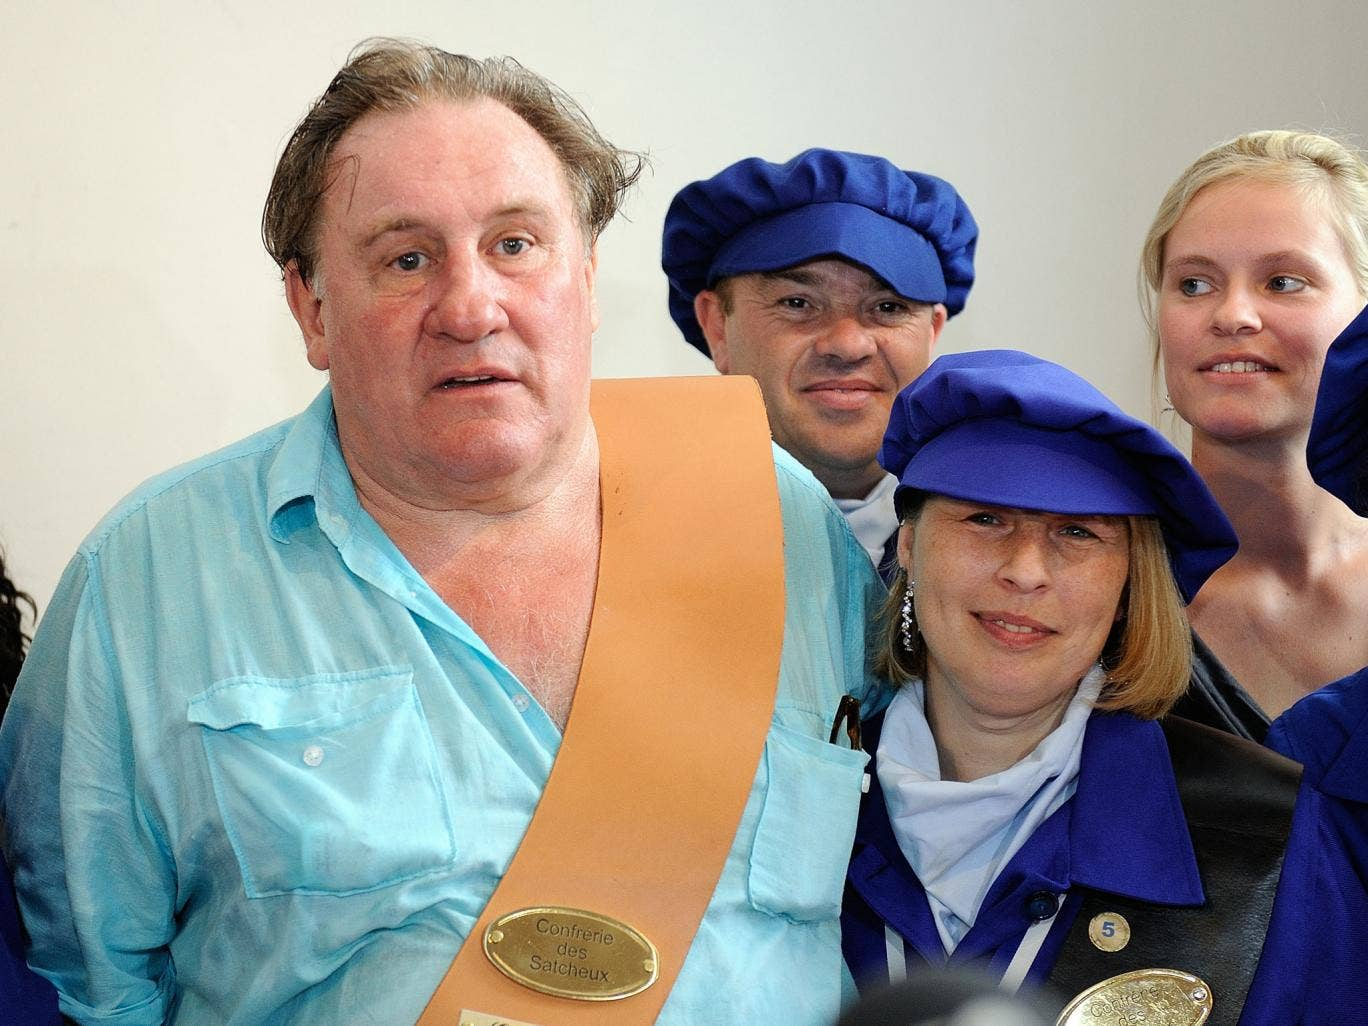 French actor Gerard Depardieu poses with people from Estaimpuis during a ceremony held in his honor at  the Chateau Bourgogne